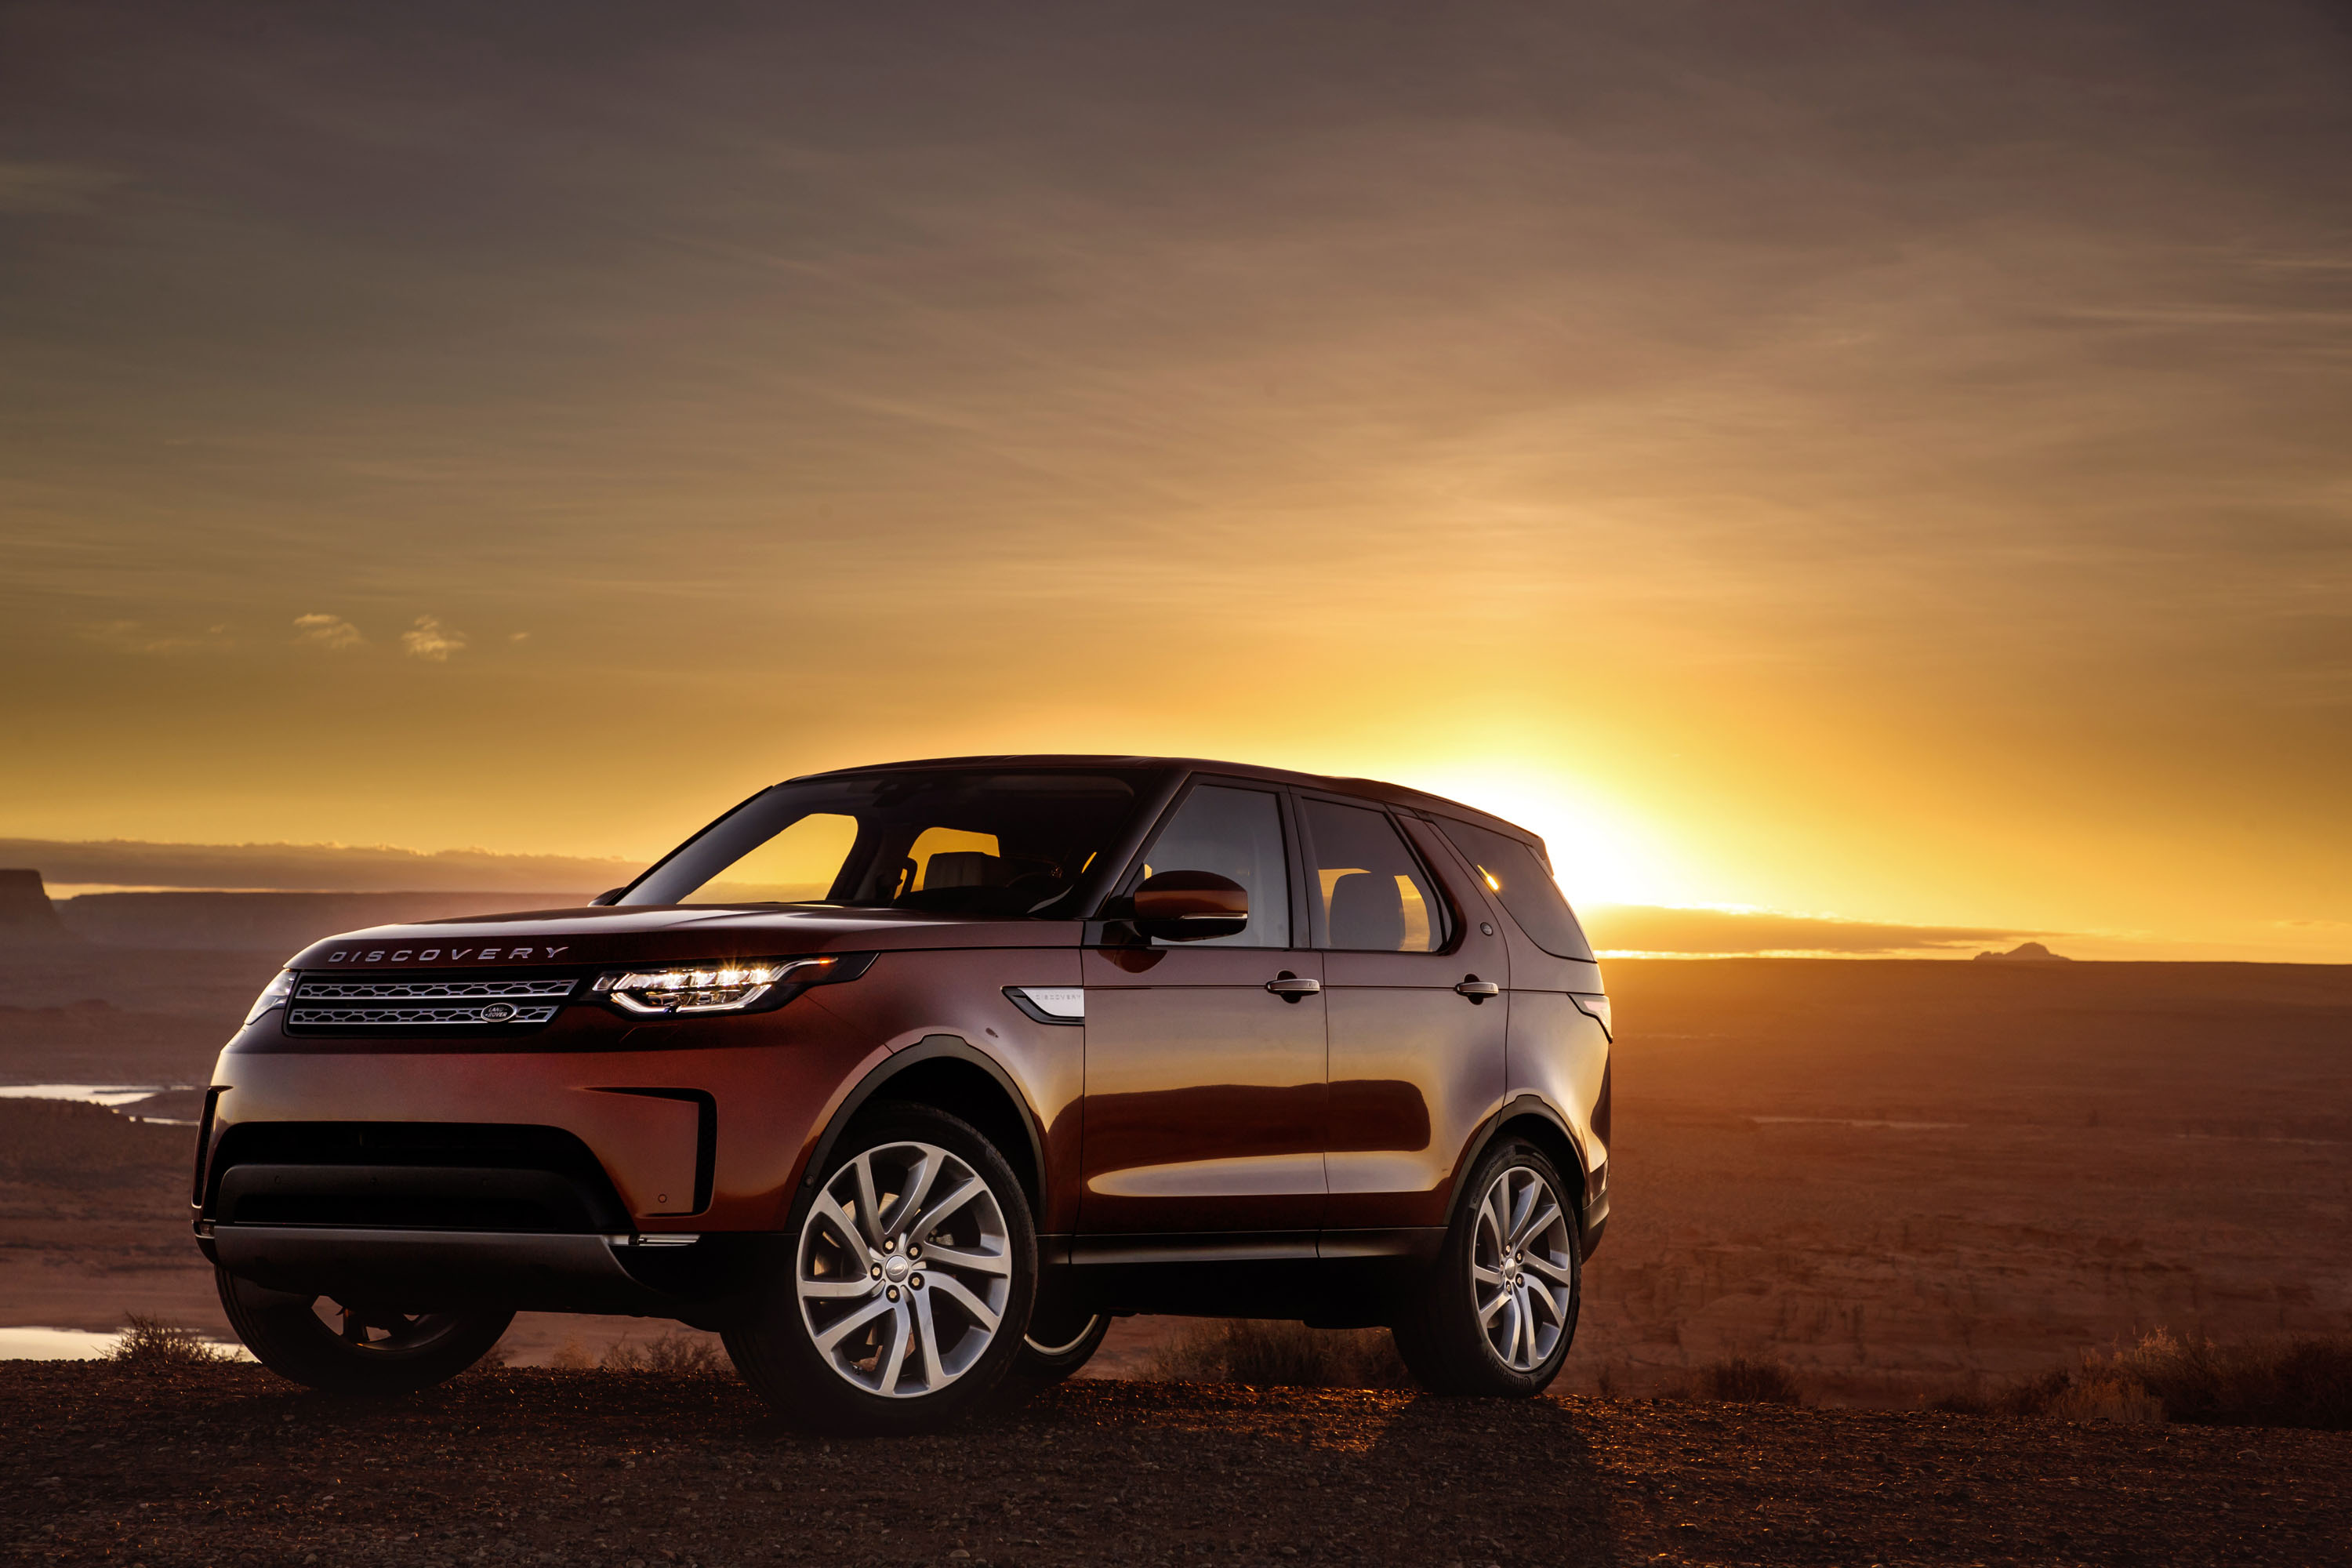 More details on SVO-enhanced Land Rover Discovery